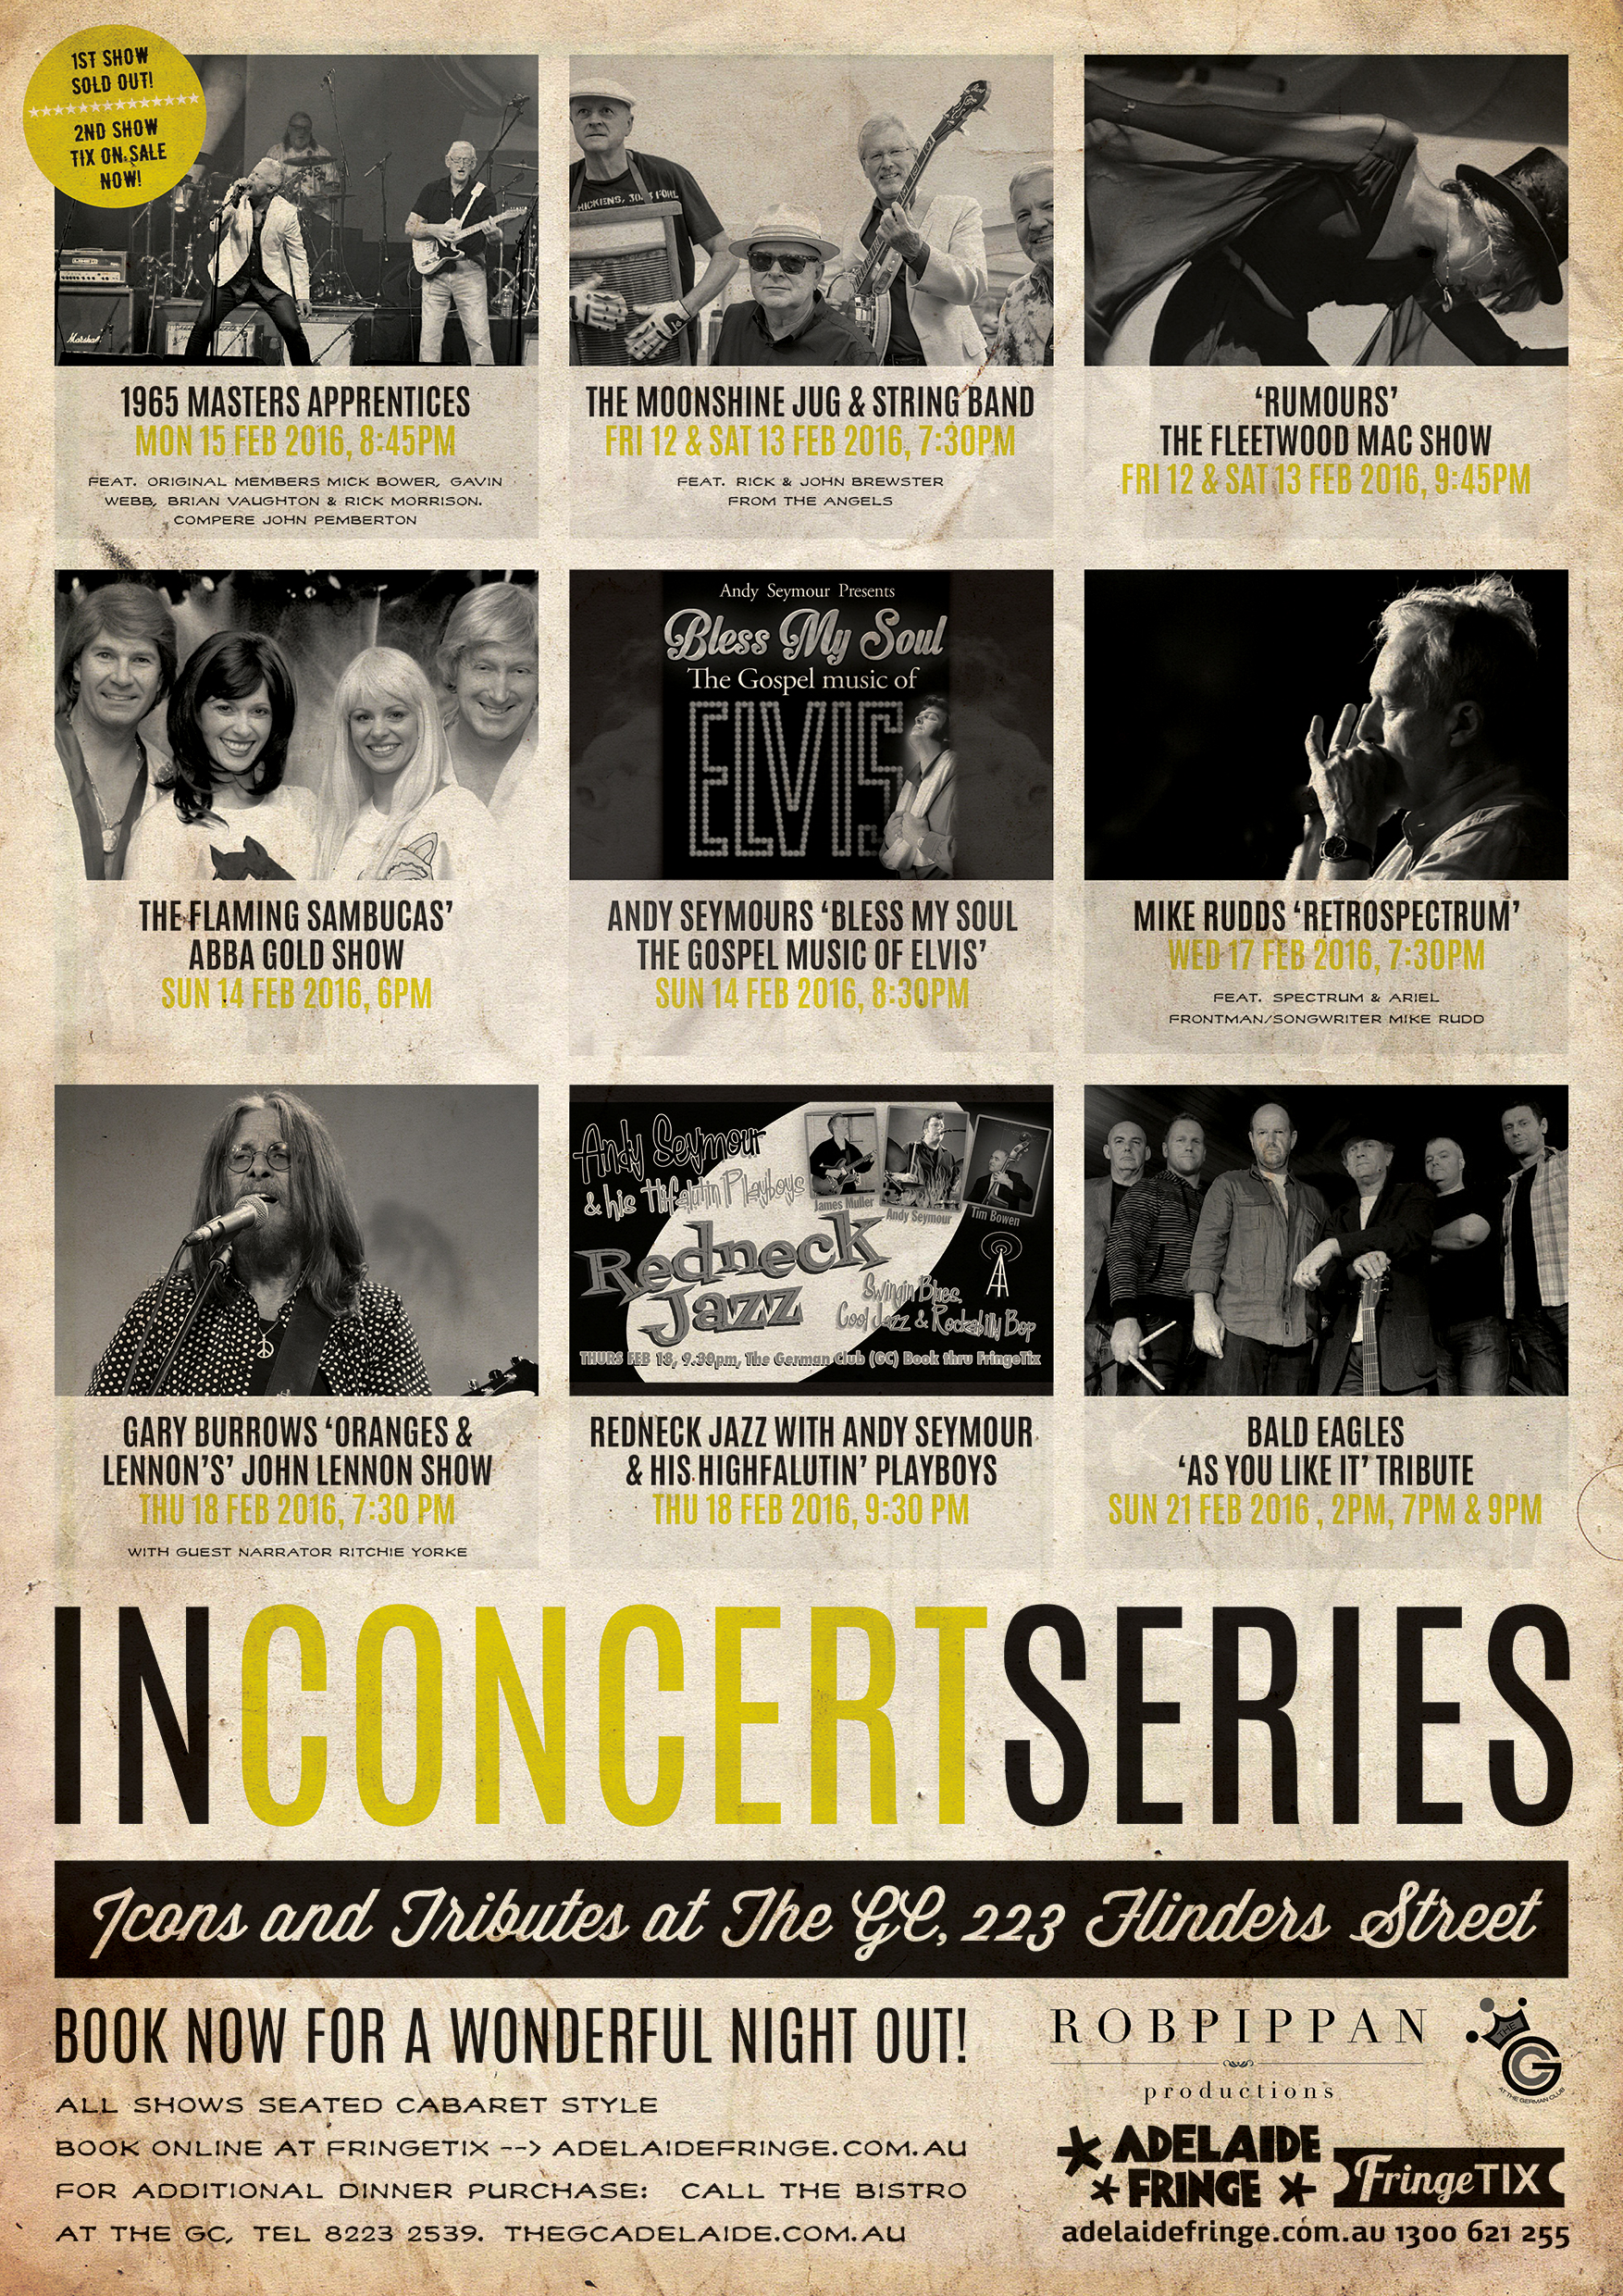 poster-in-concert-series